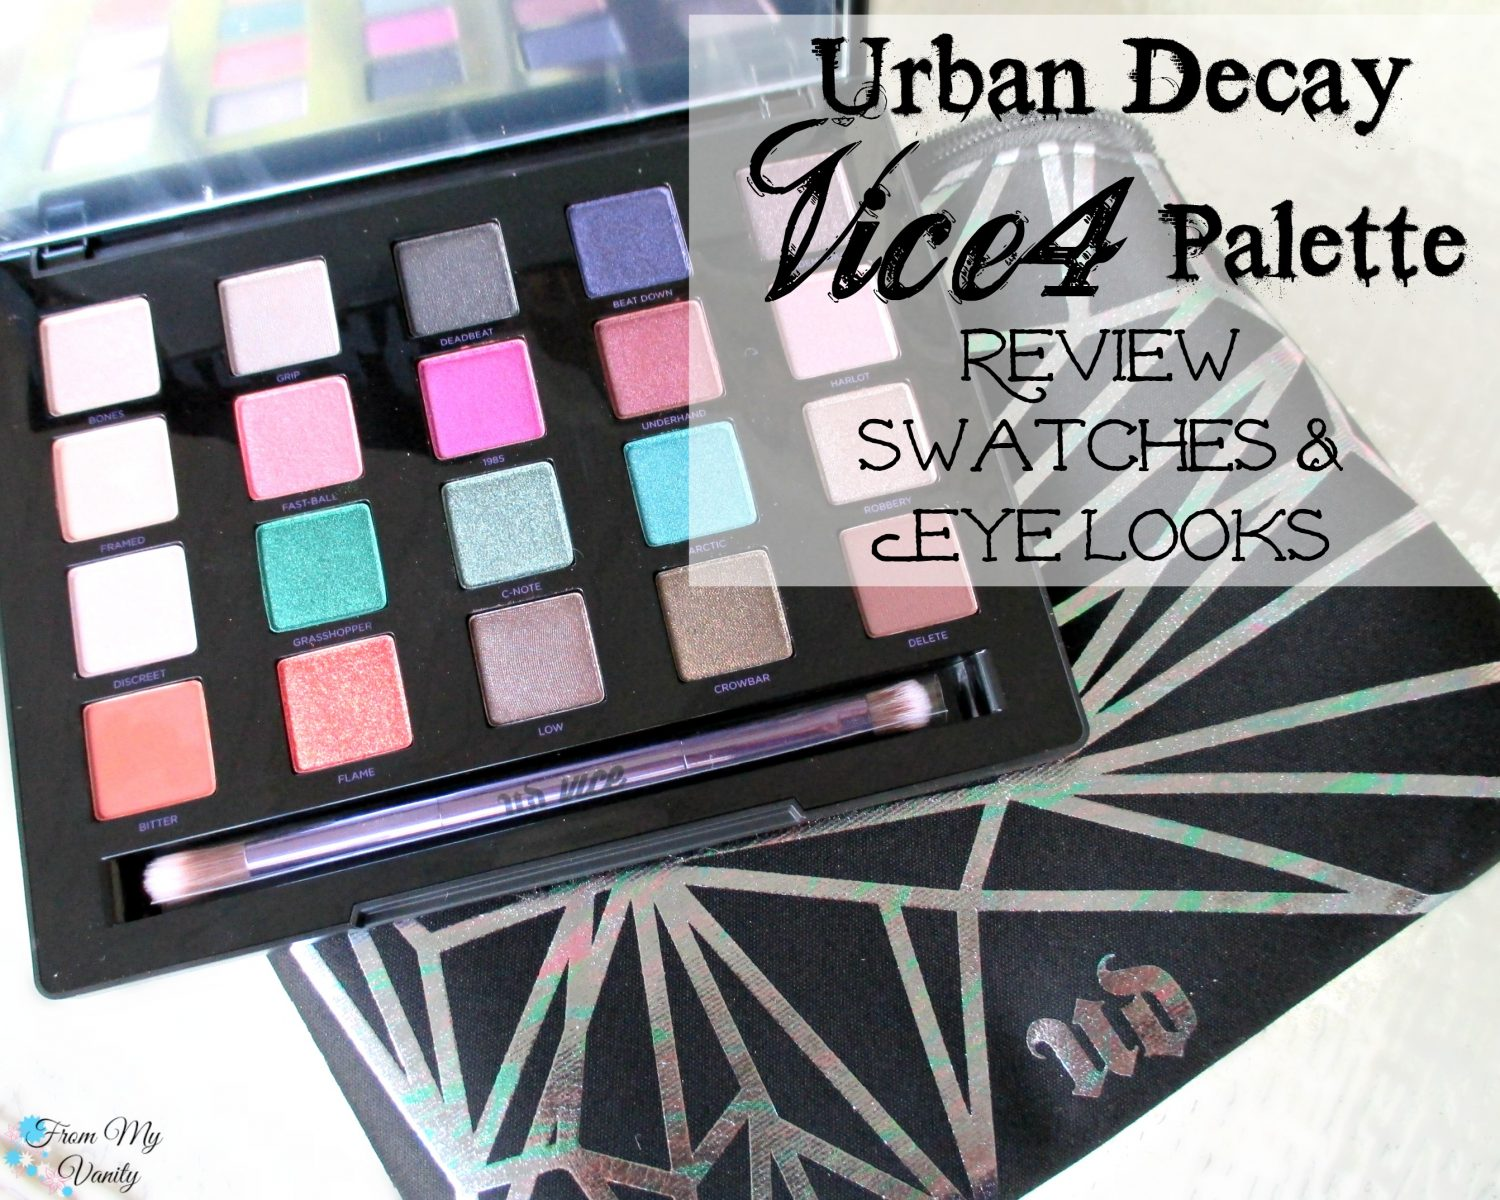 Urban Decay Vice 4 Palette // Review, Swatches, & Eye Looks // FromMyVanity.com